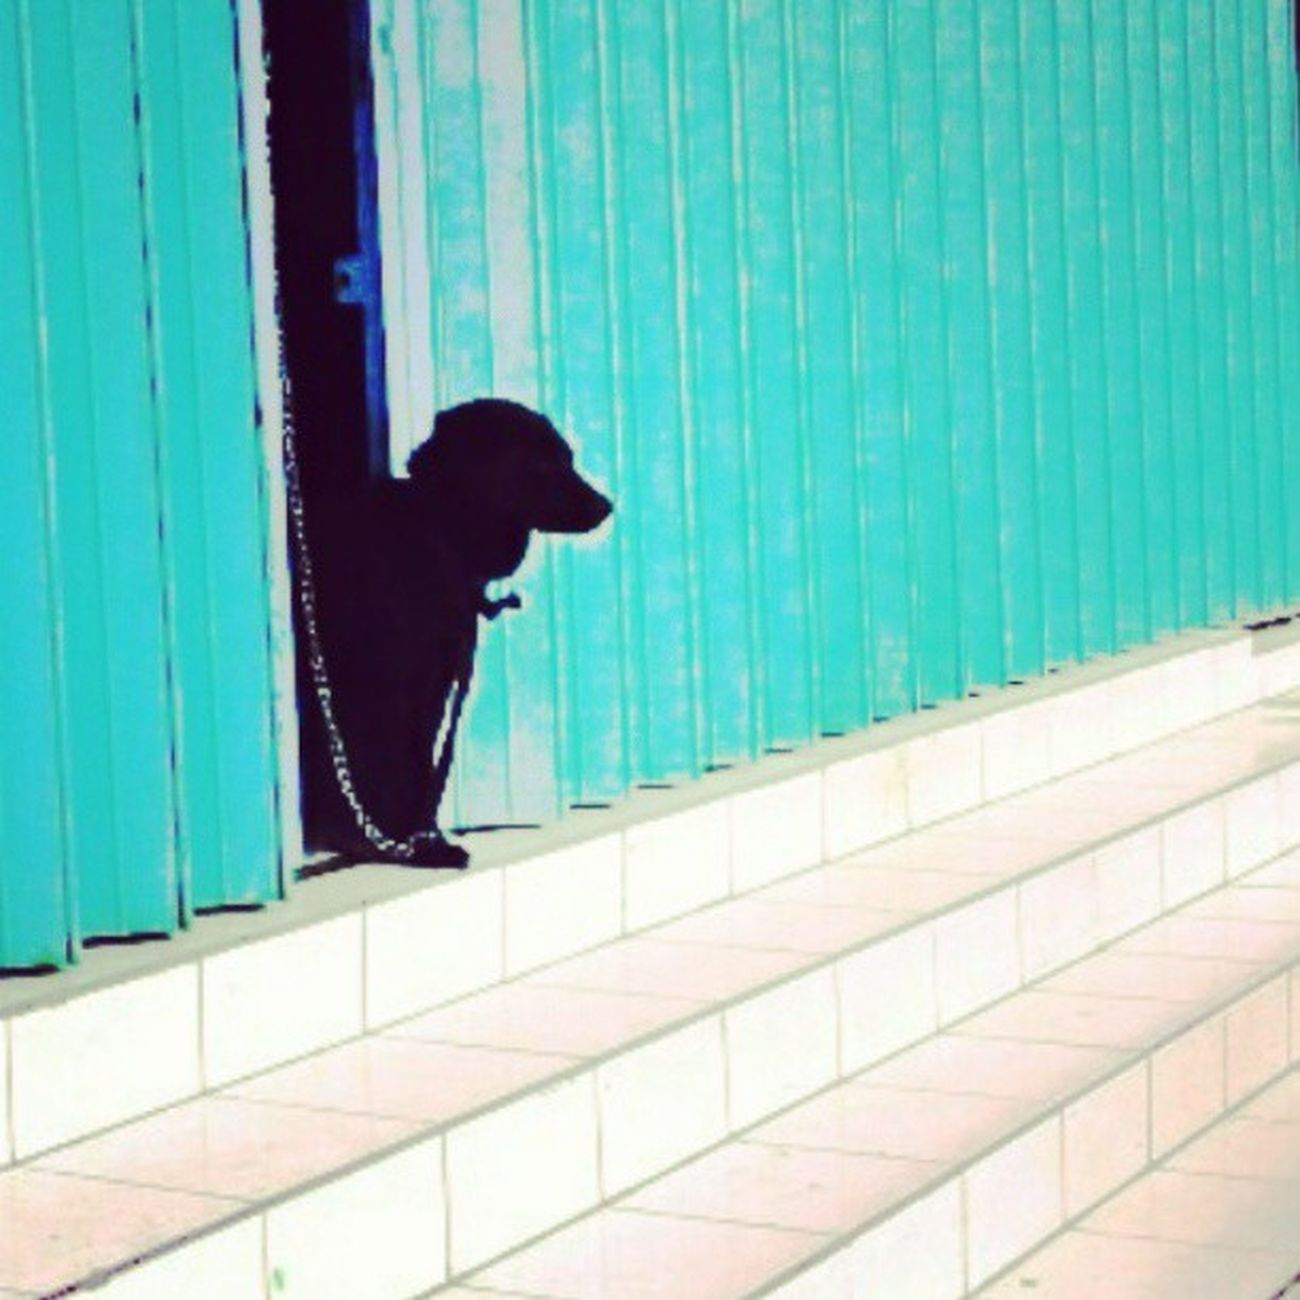 guard Dog Dailypictures Streetphotography Shape Lines Igers Instanesia Sunday Weekproject Instafamous Instanusantarabali IGDaily Instacolor Ighub Instahub Instadaily Instanusantara Instapop Falsecolor Instafalsecolor Bali INDONESIA LangitbaliPhotoworks